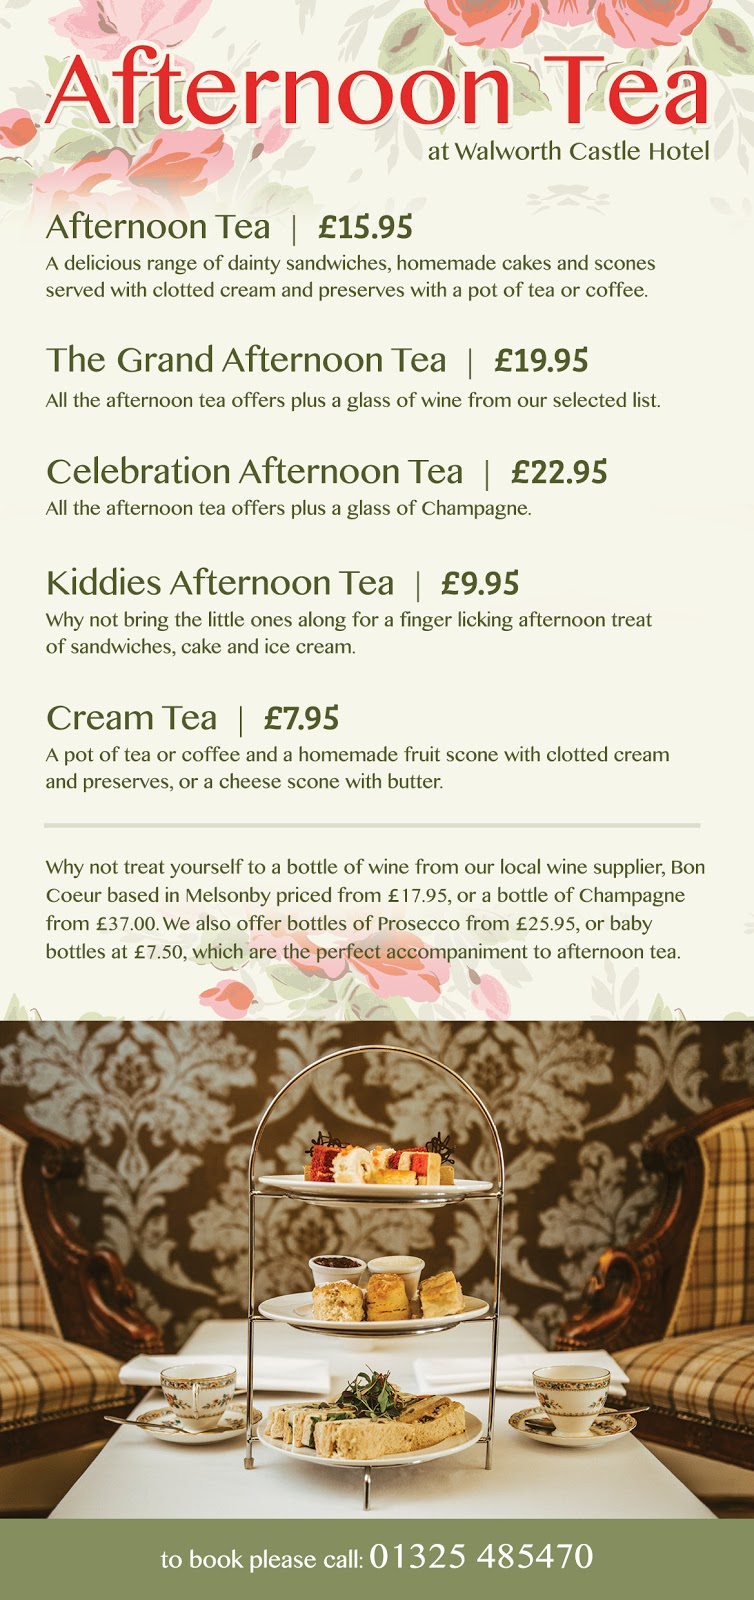 20+ Places you can book Children's Afternoon Tea in North East England - walworth castle